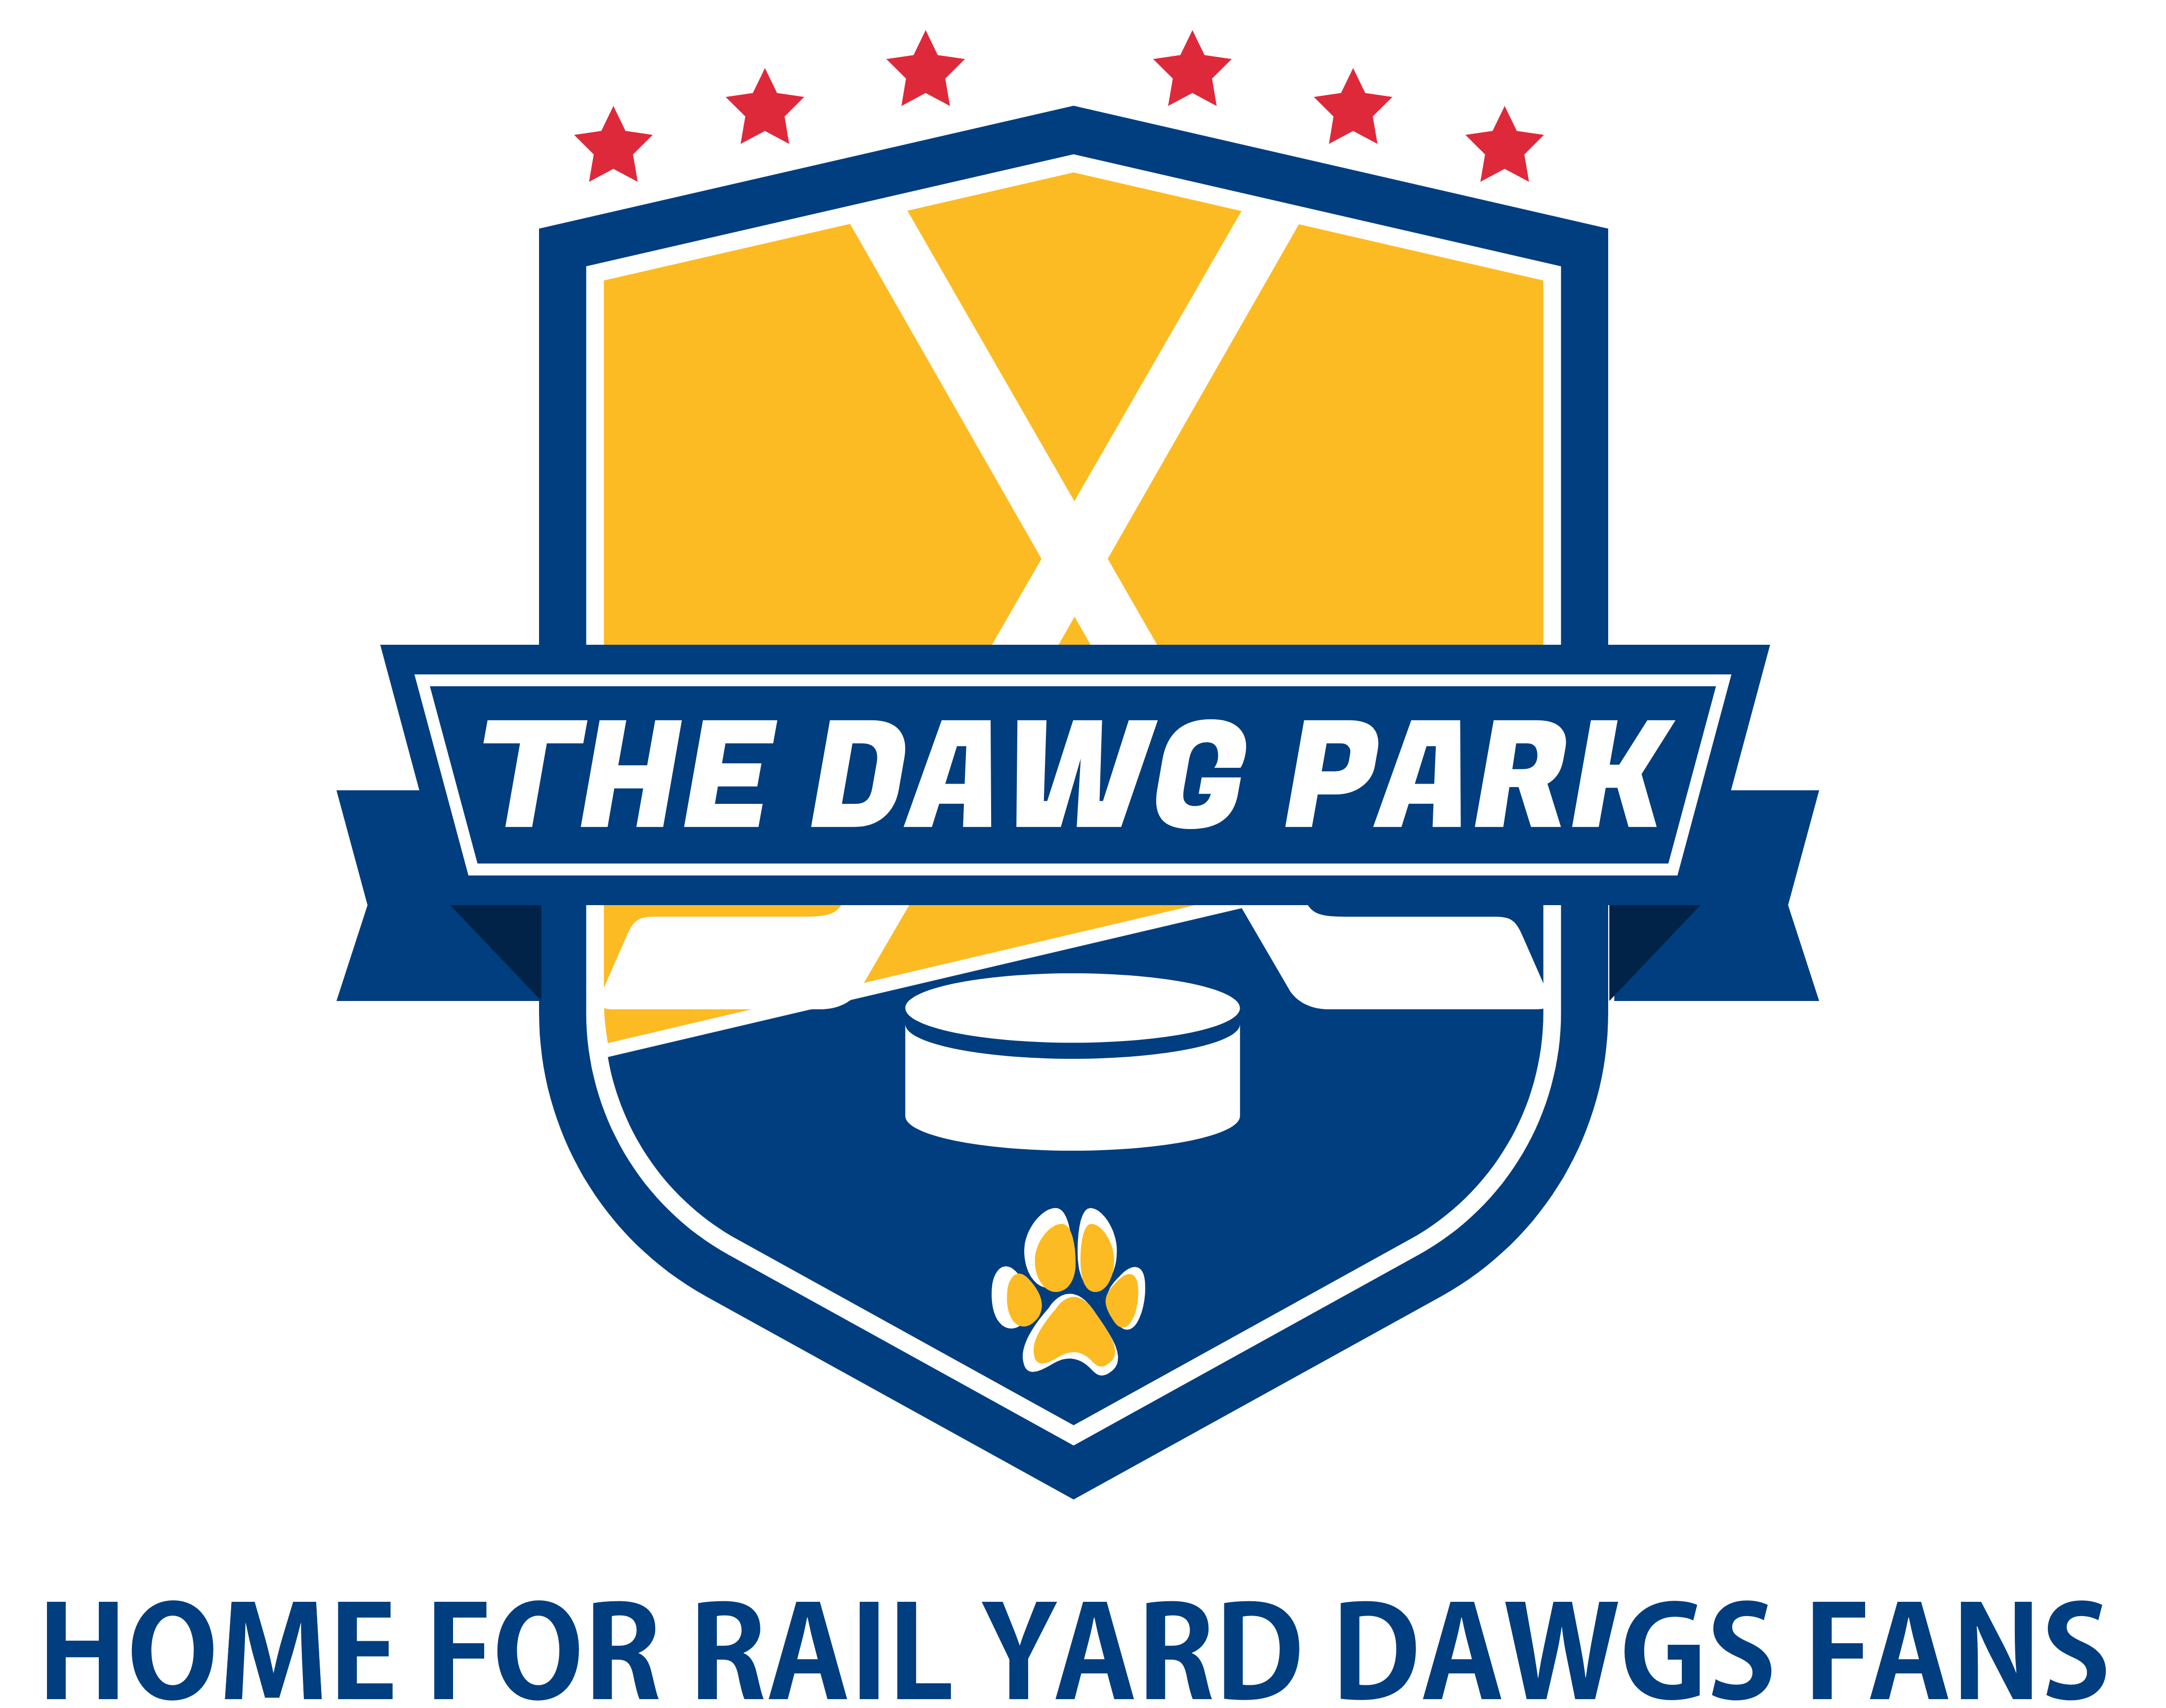 THE DAWG PARK